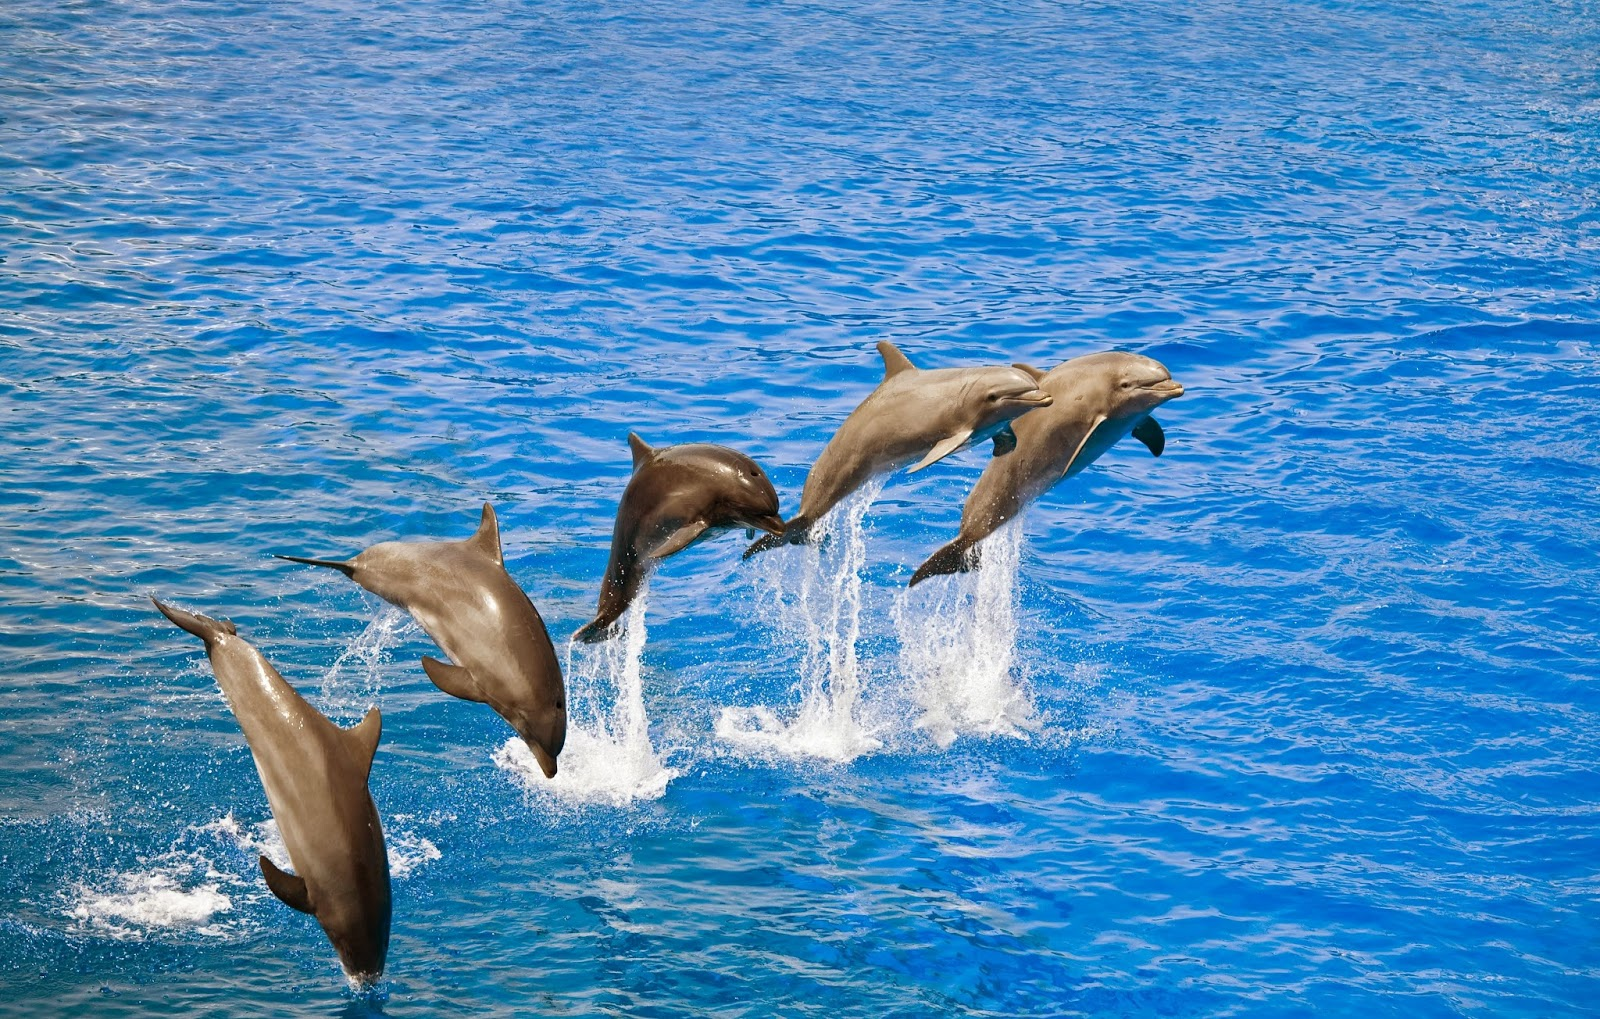 Baby dolphins jumping out of the water